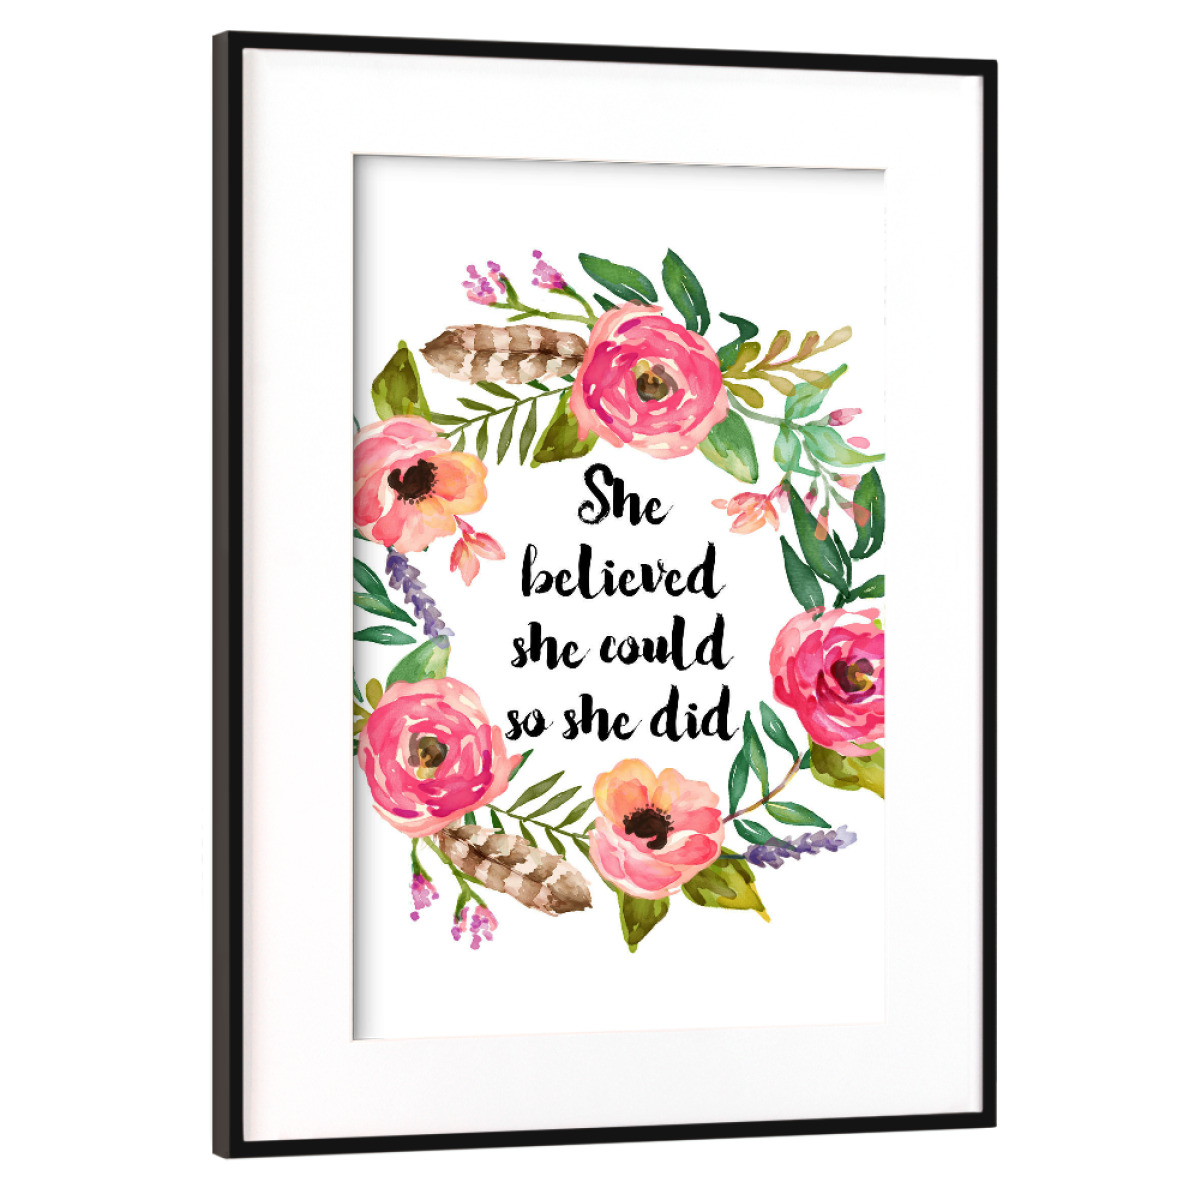 Purchase The She Believed She Could So She Did As A Frame At Artboxone